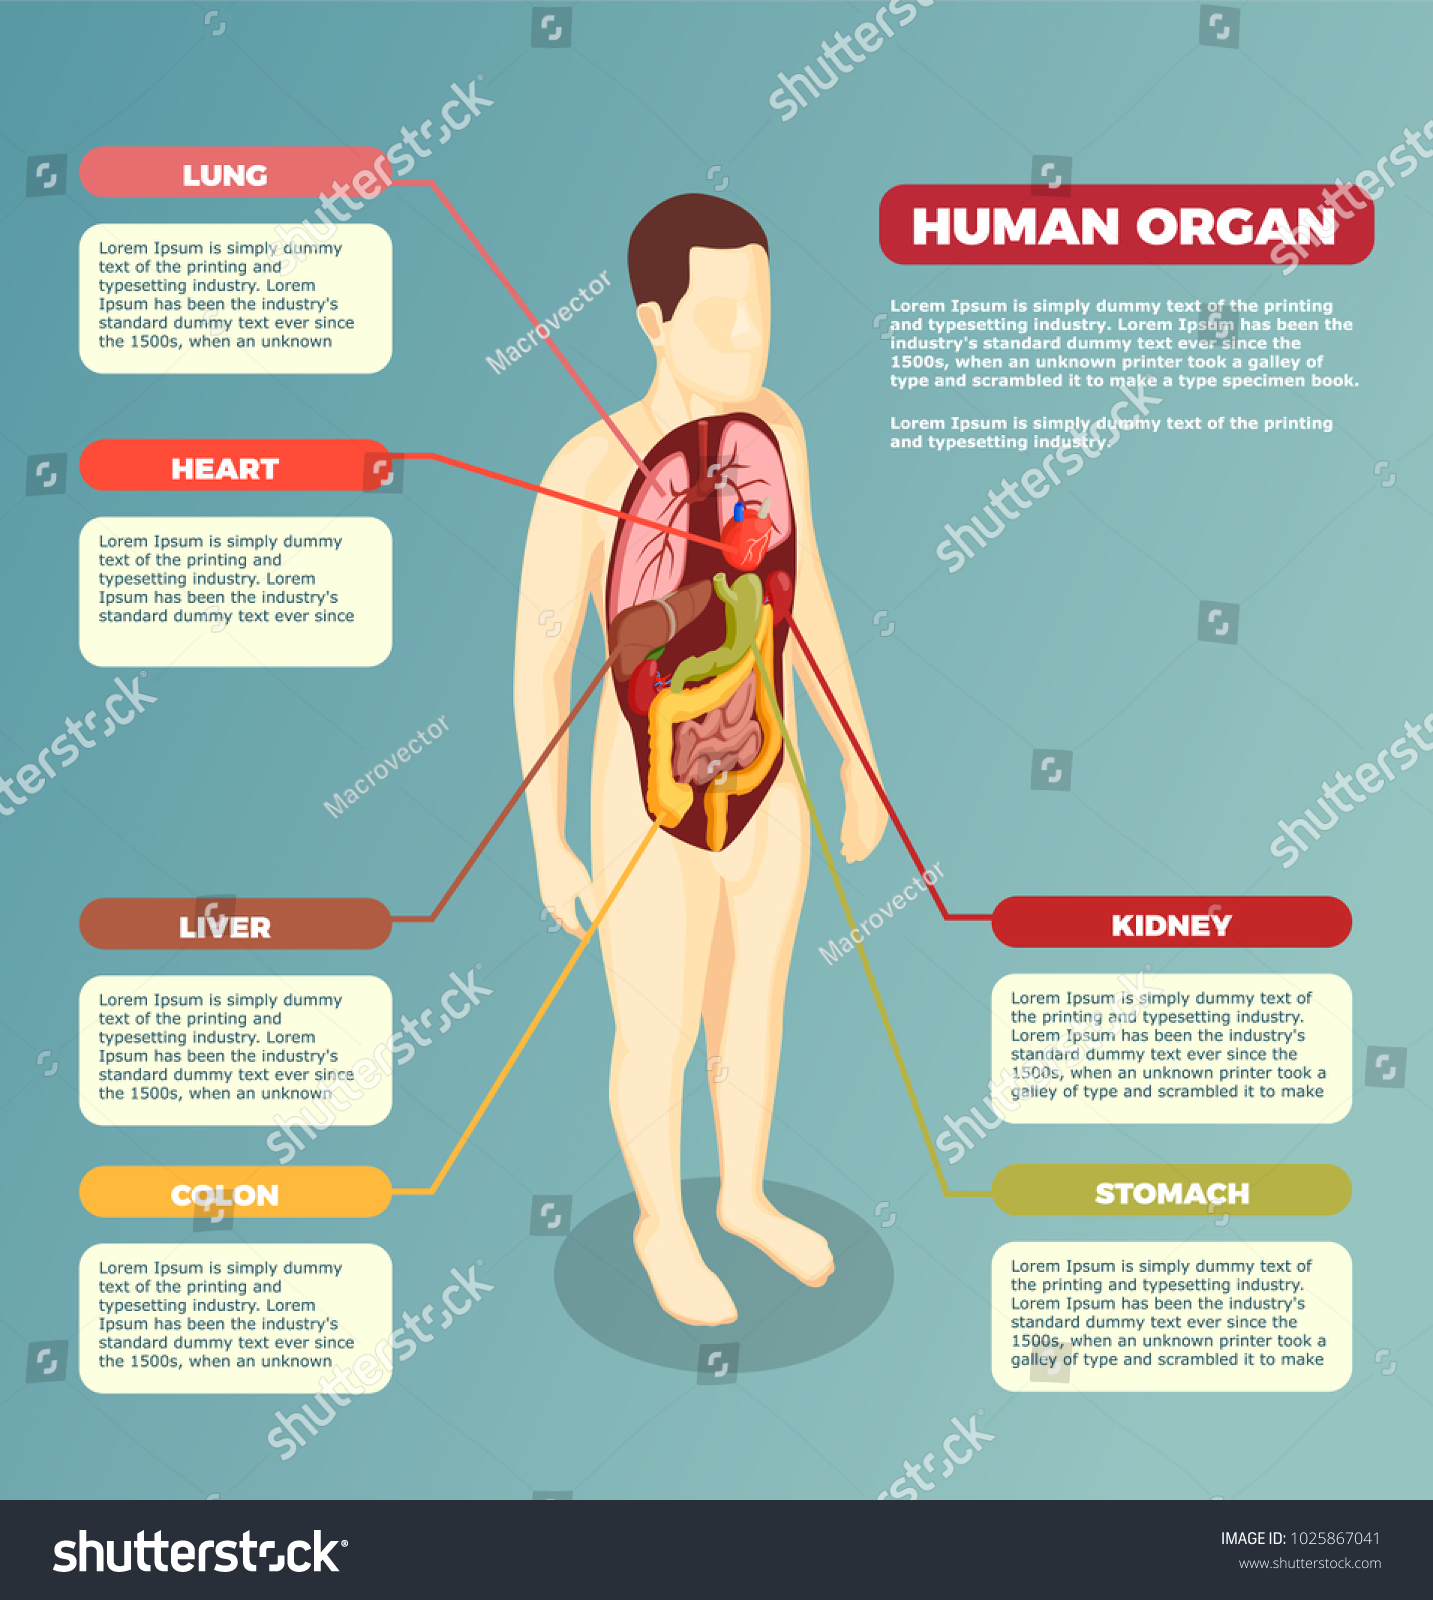 Anatomy Human Body Internal Organs Medical Stock Vektorgrafik